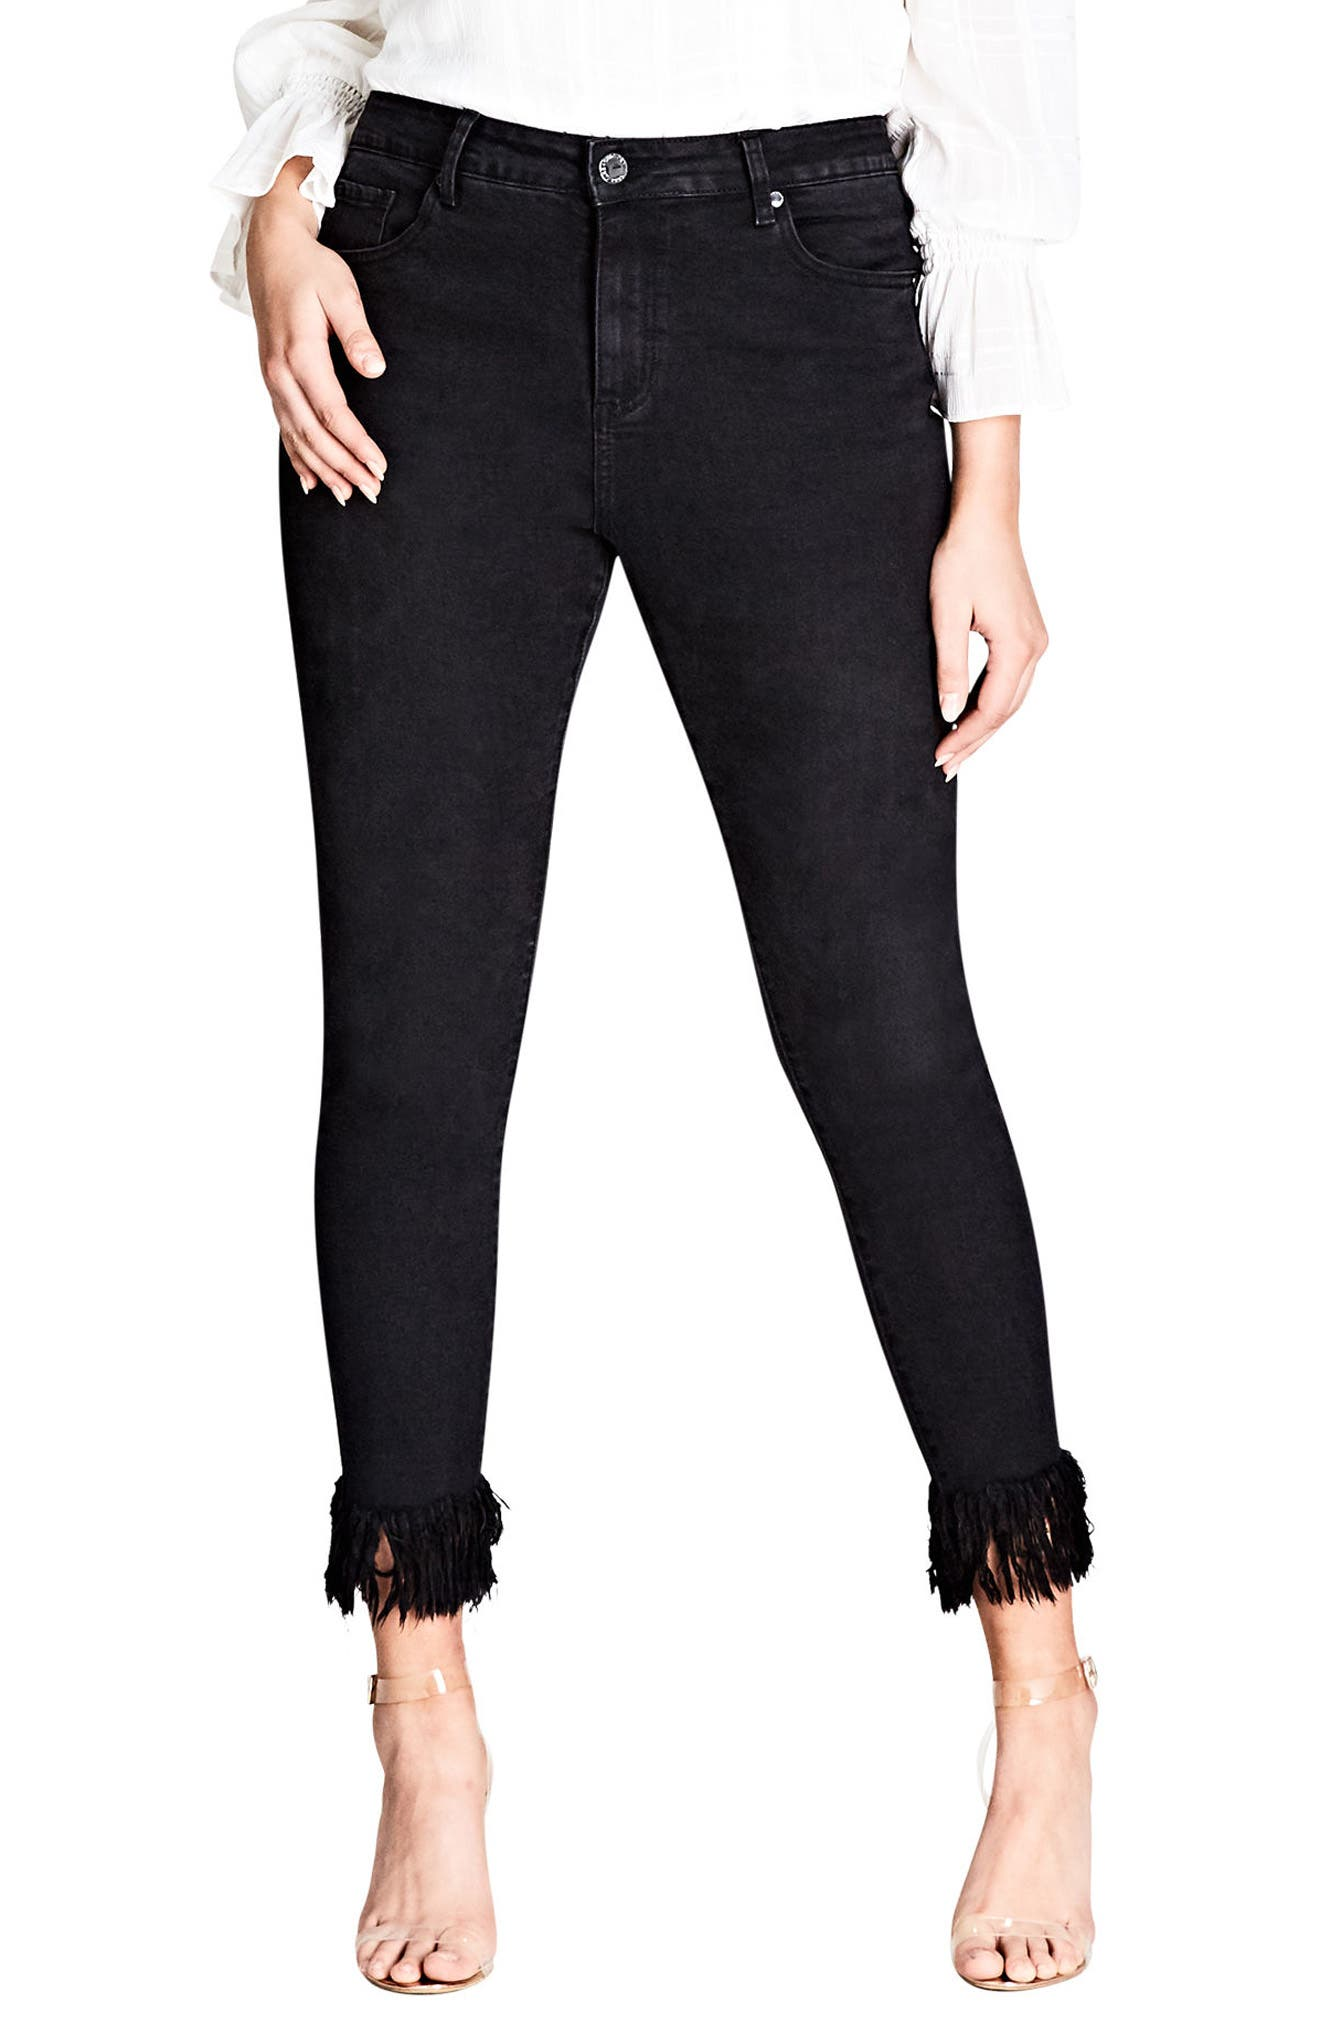 Jean Harley Overfrayed Hem Skinny Jeans,                             Main thumbnail 1, color,                             Black